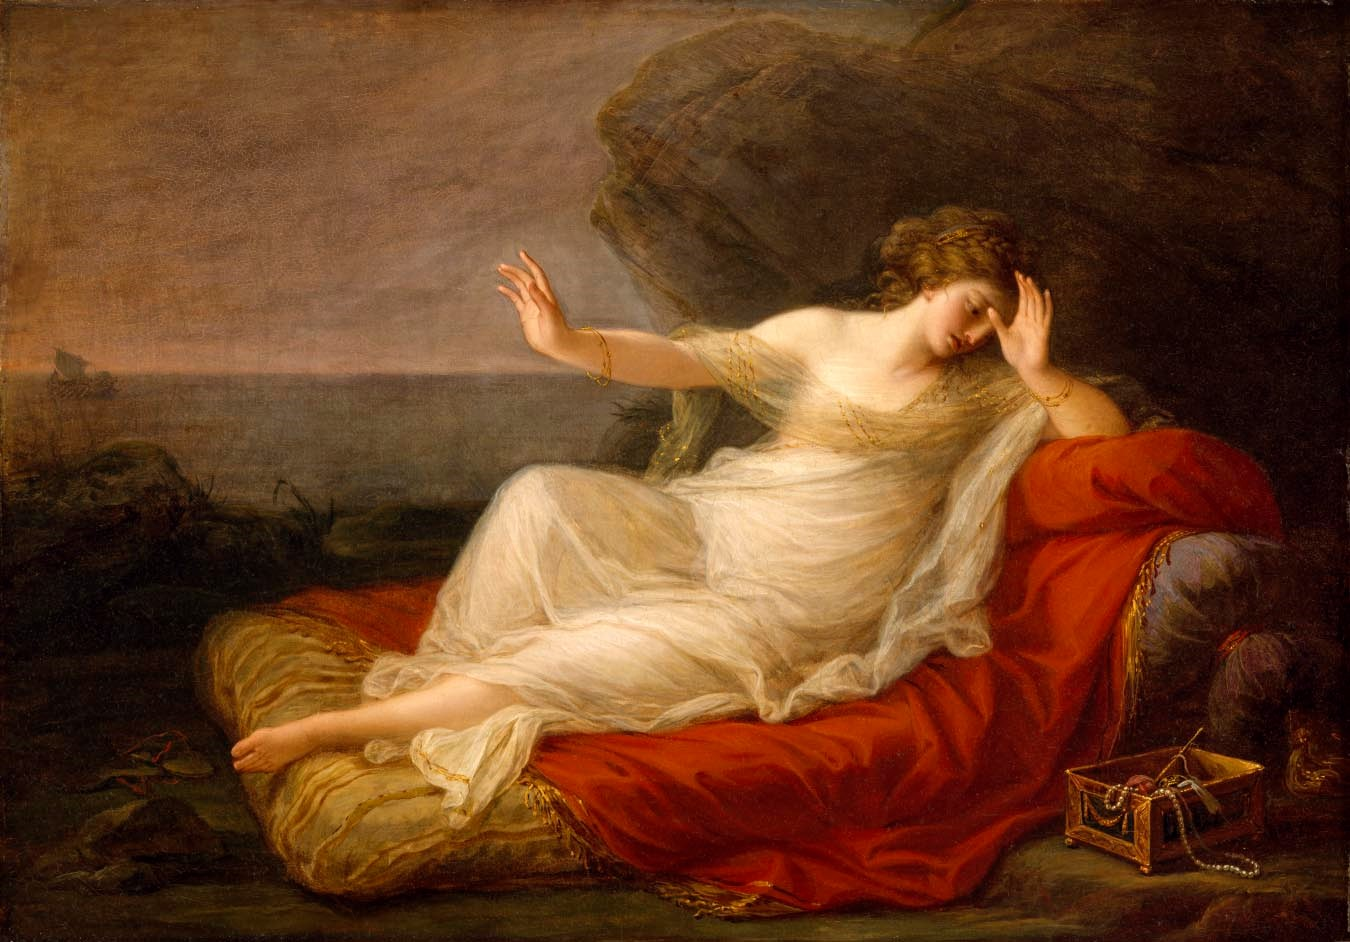 Kauffmann - Ariadne Abandoned by Theseus